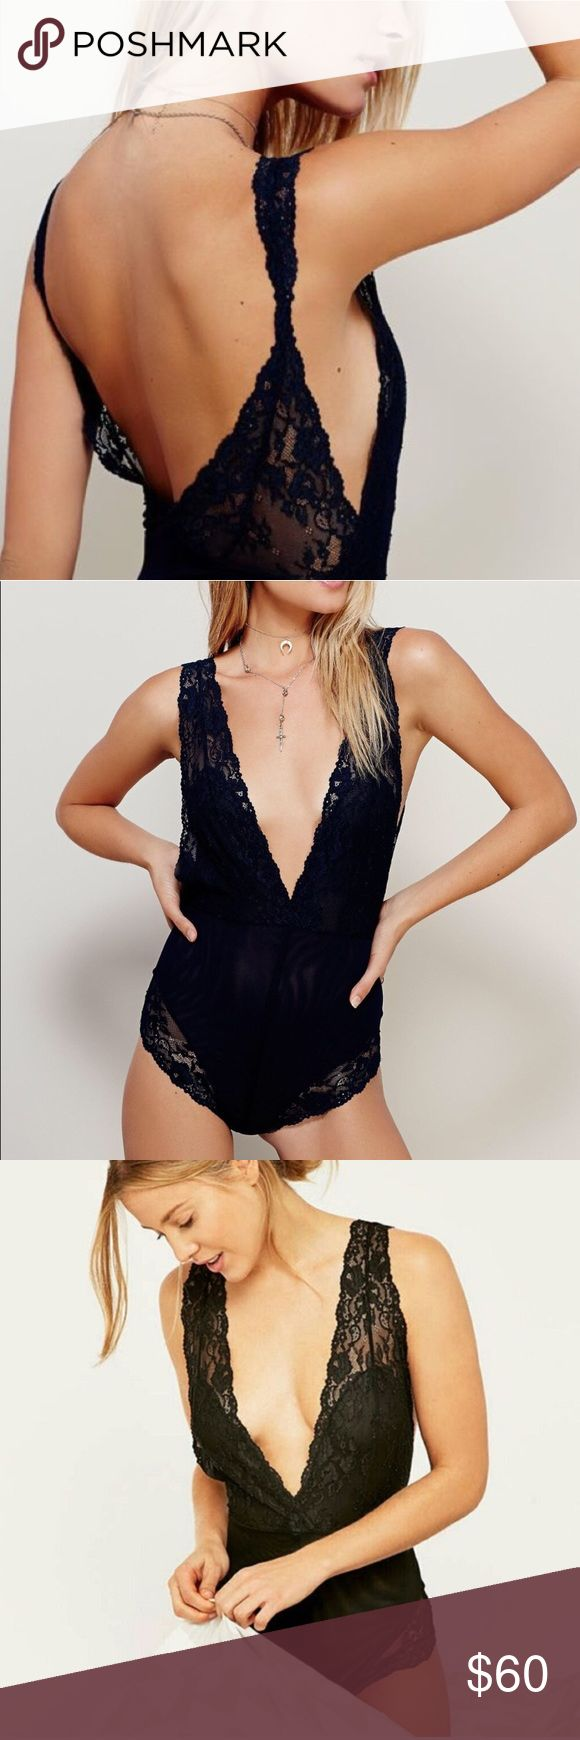 Free People Bodysuit Never worn. Black body suit that can be worn underneath dresses or tops to peek out beautifully or as a tank w/ pants. It's a smooth, soft lace that you'll love slipping into whether you're climbing into bed or heading out and about in style. Free People Intimates & Sleepwear